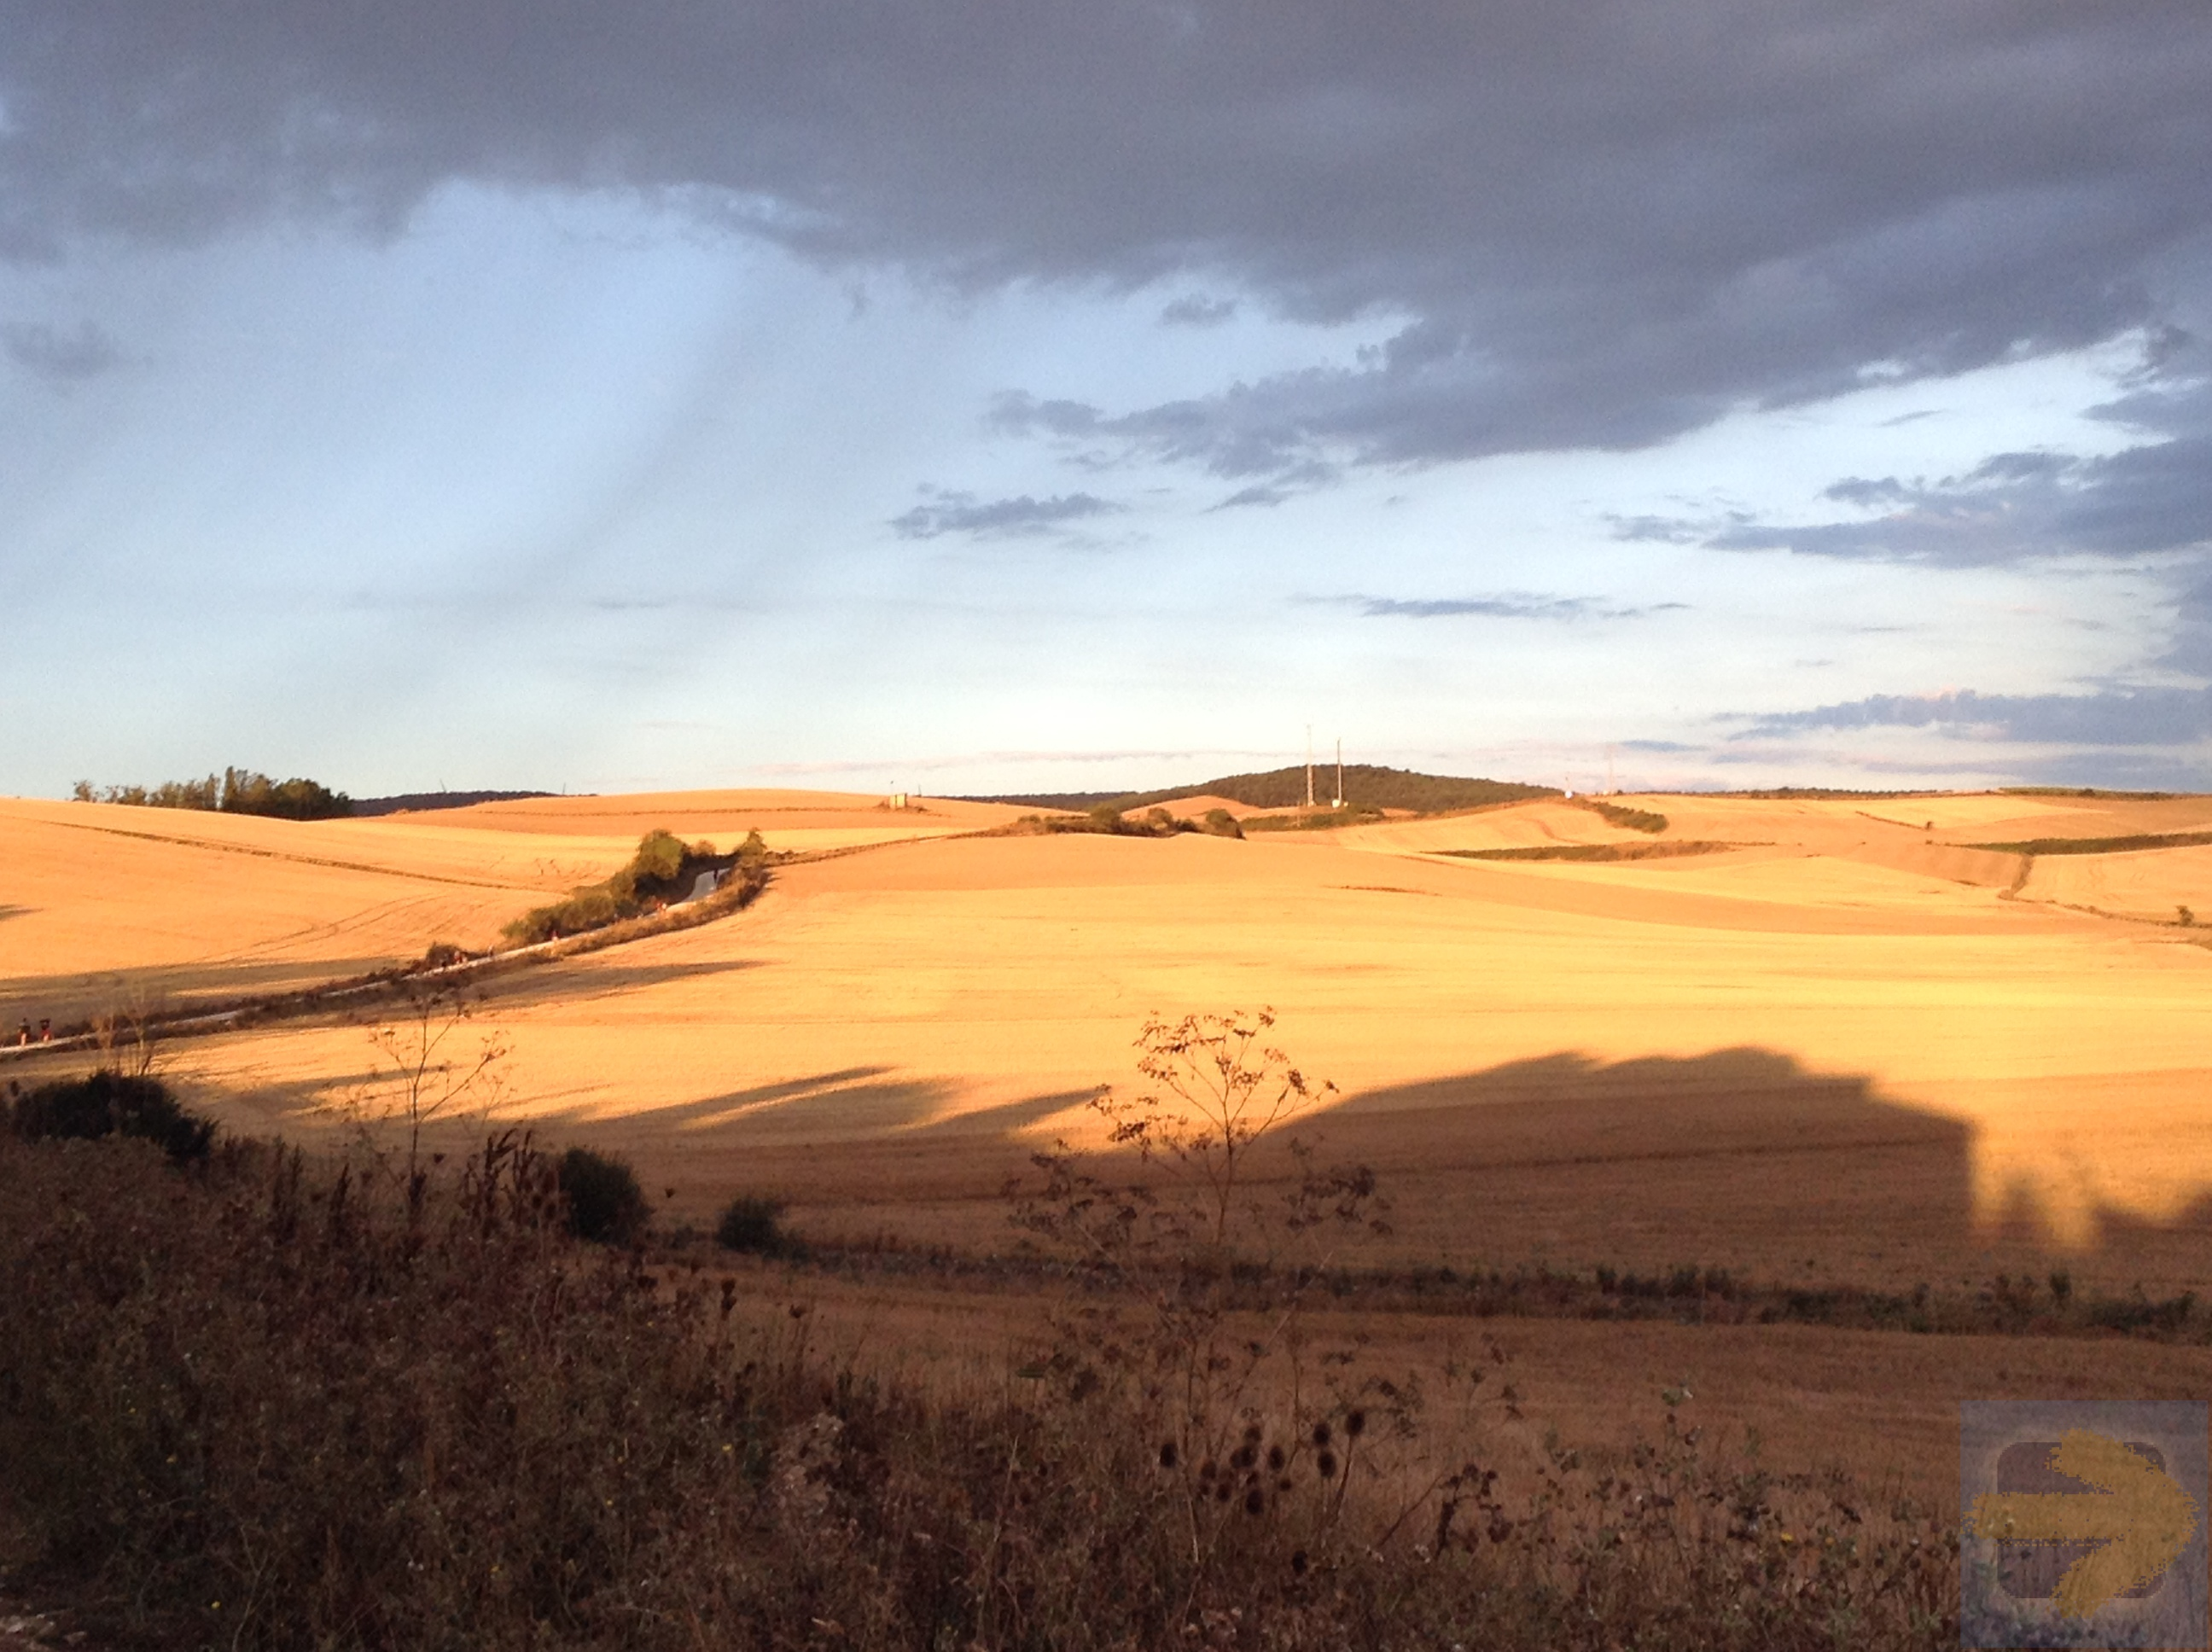 Morning light on the Meseta